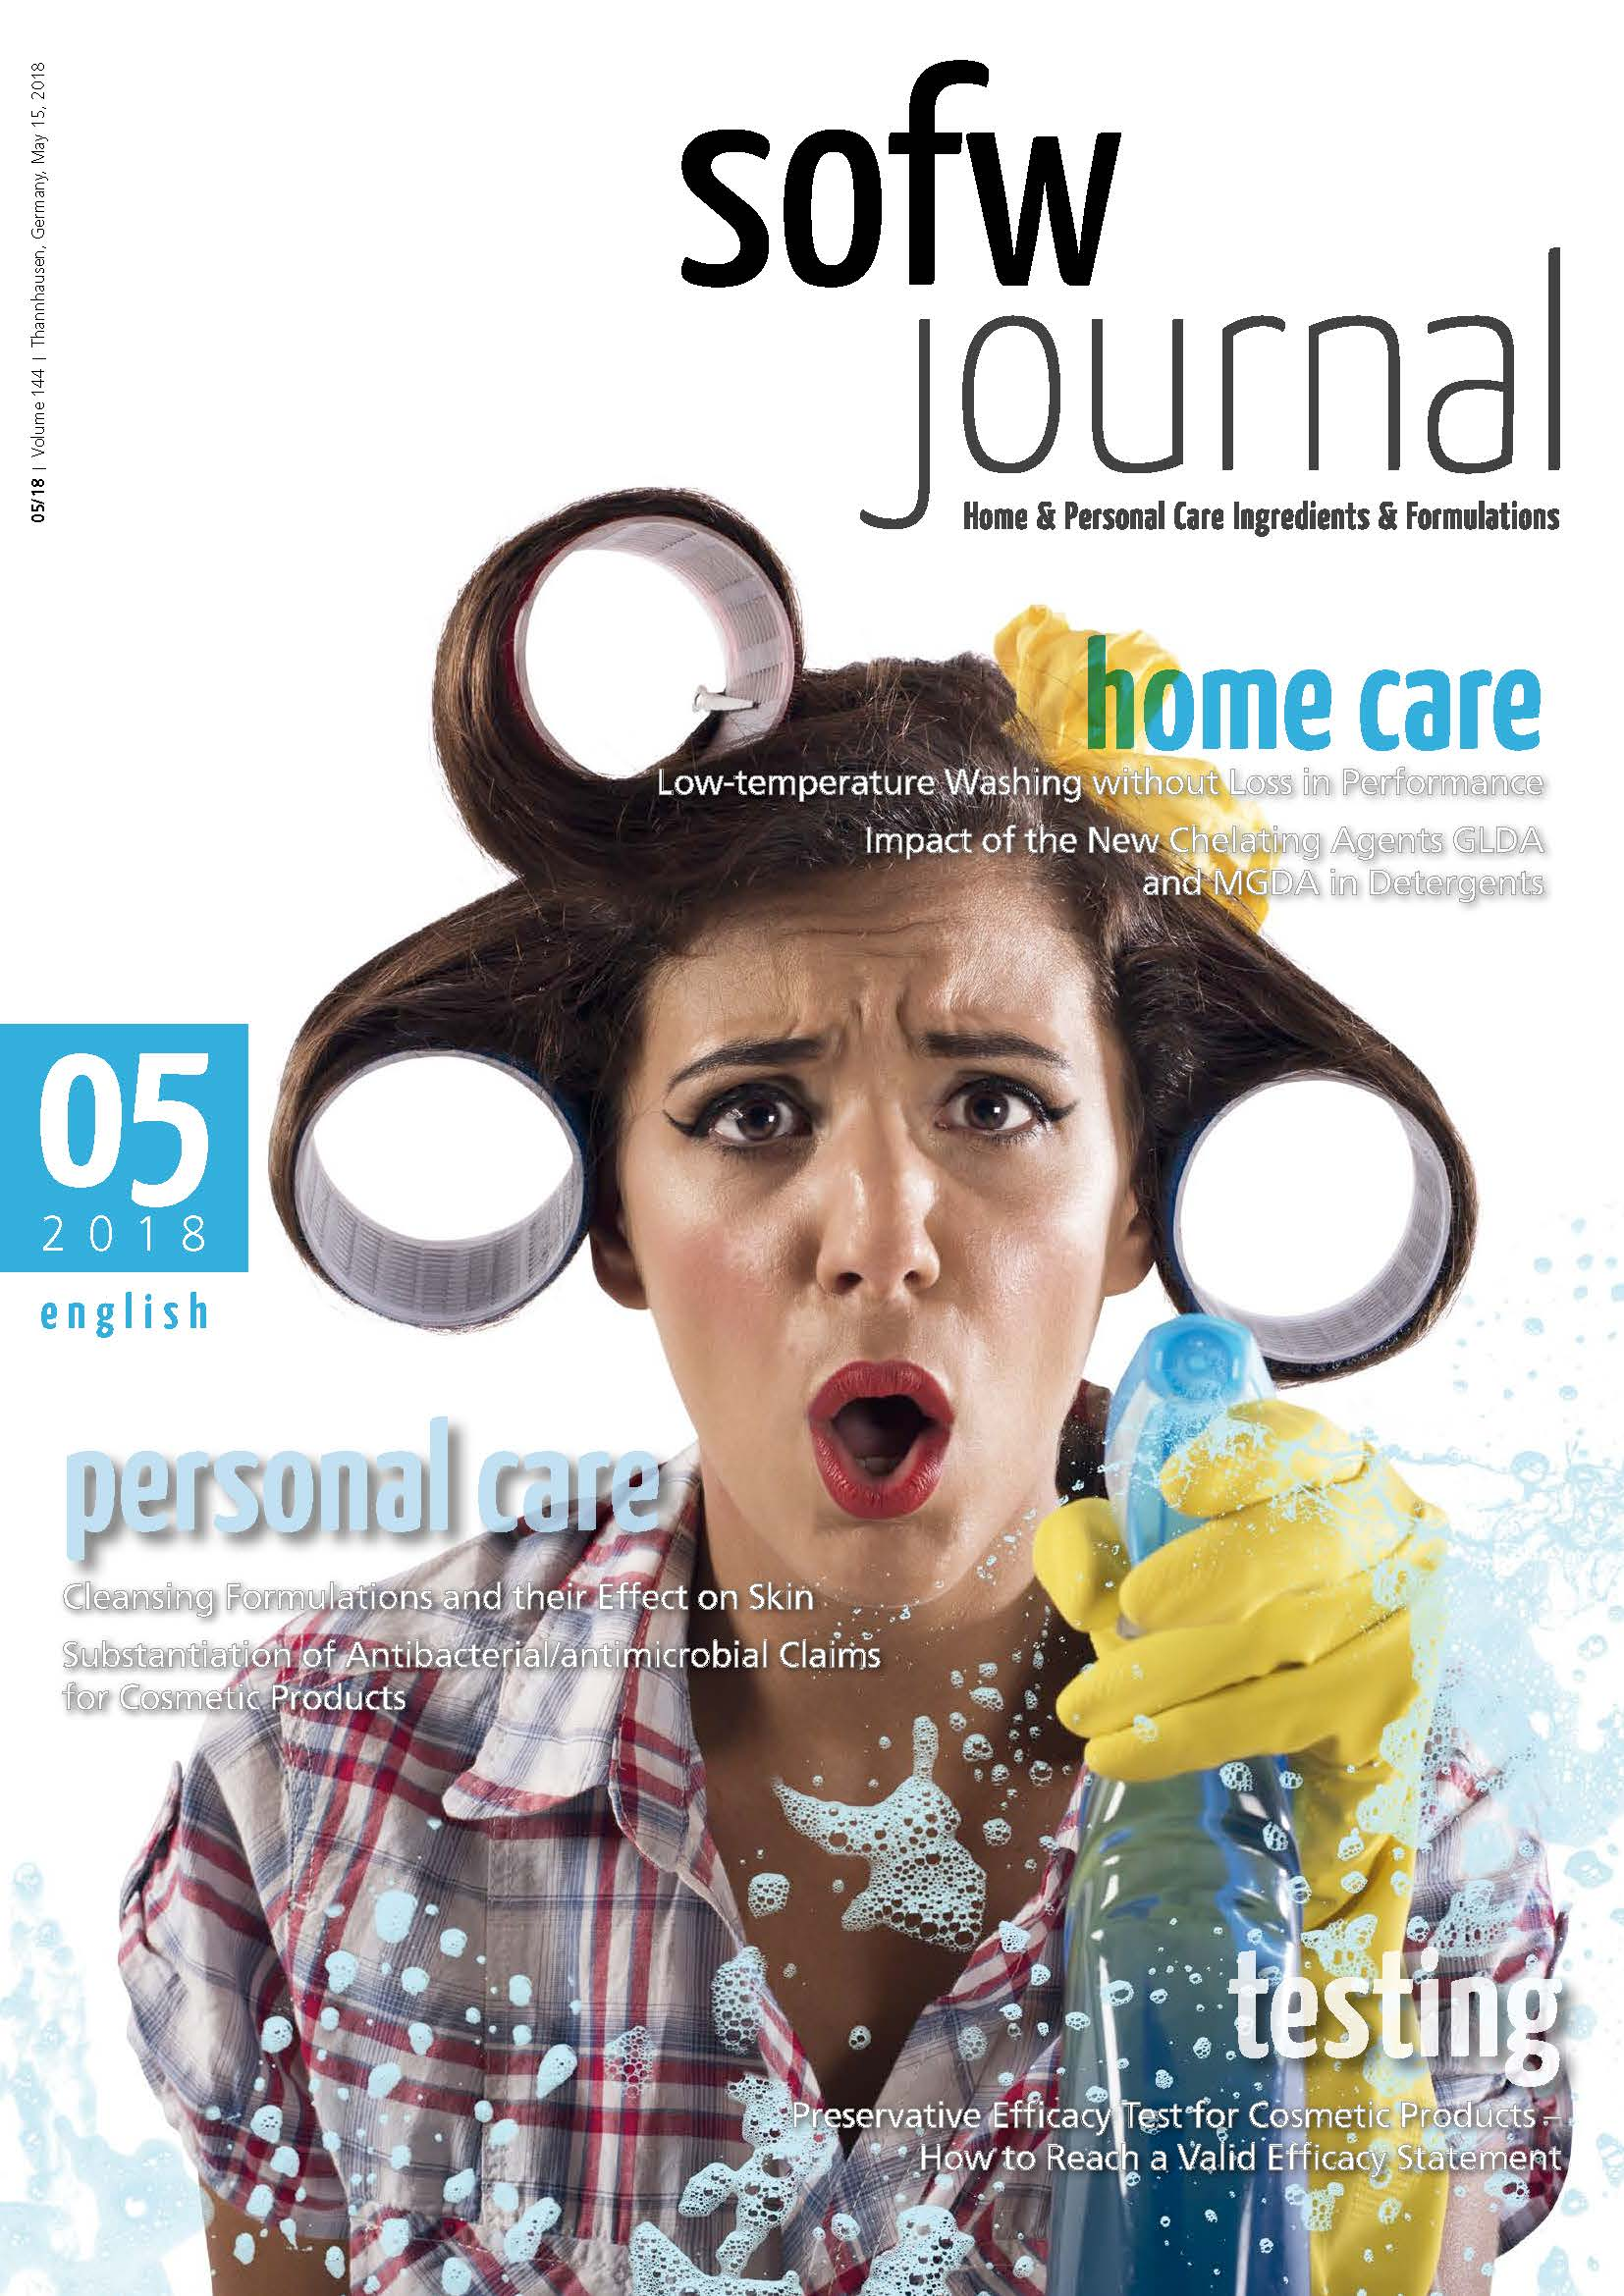 sofwjournal_en_2018_05_cover